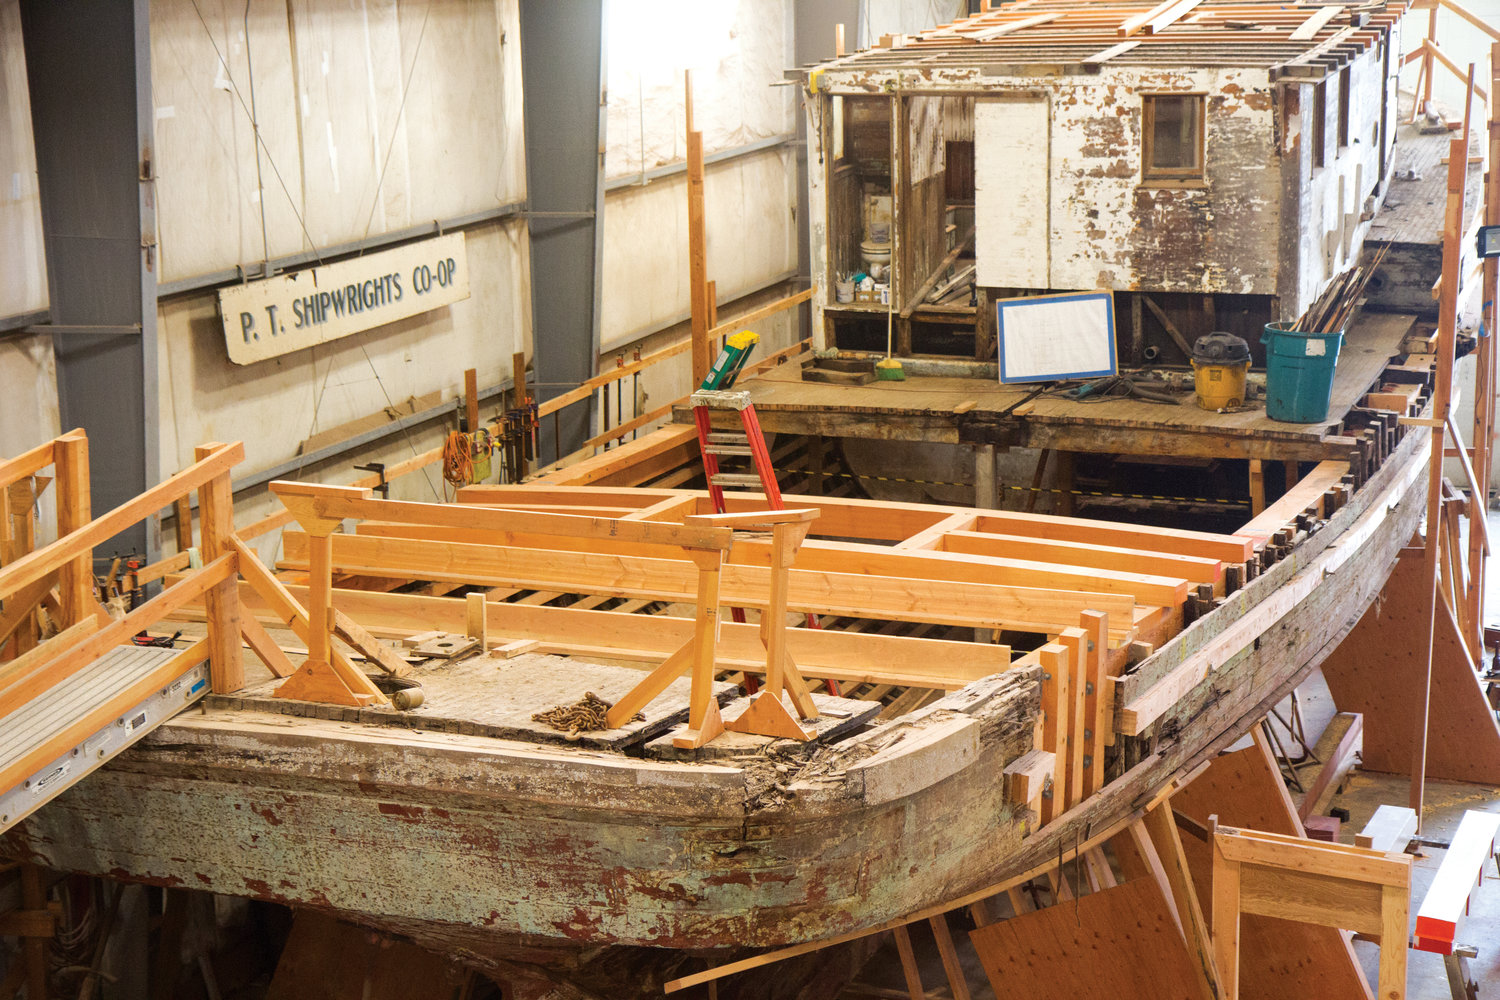 The shipwrights are rebuilding the aft deck beam structure of the Western Flyer before they begin to rebuild the stern and heel. After it sank in the Swinomish Channel, the historic Western Flyer was in poor shape. Since then, the Port Townsend Shipwrights Co-op has taken on restoration. P